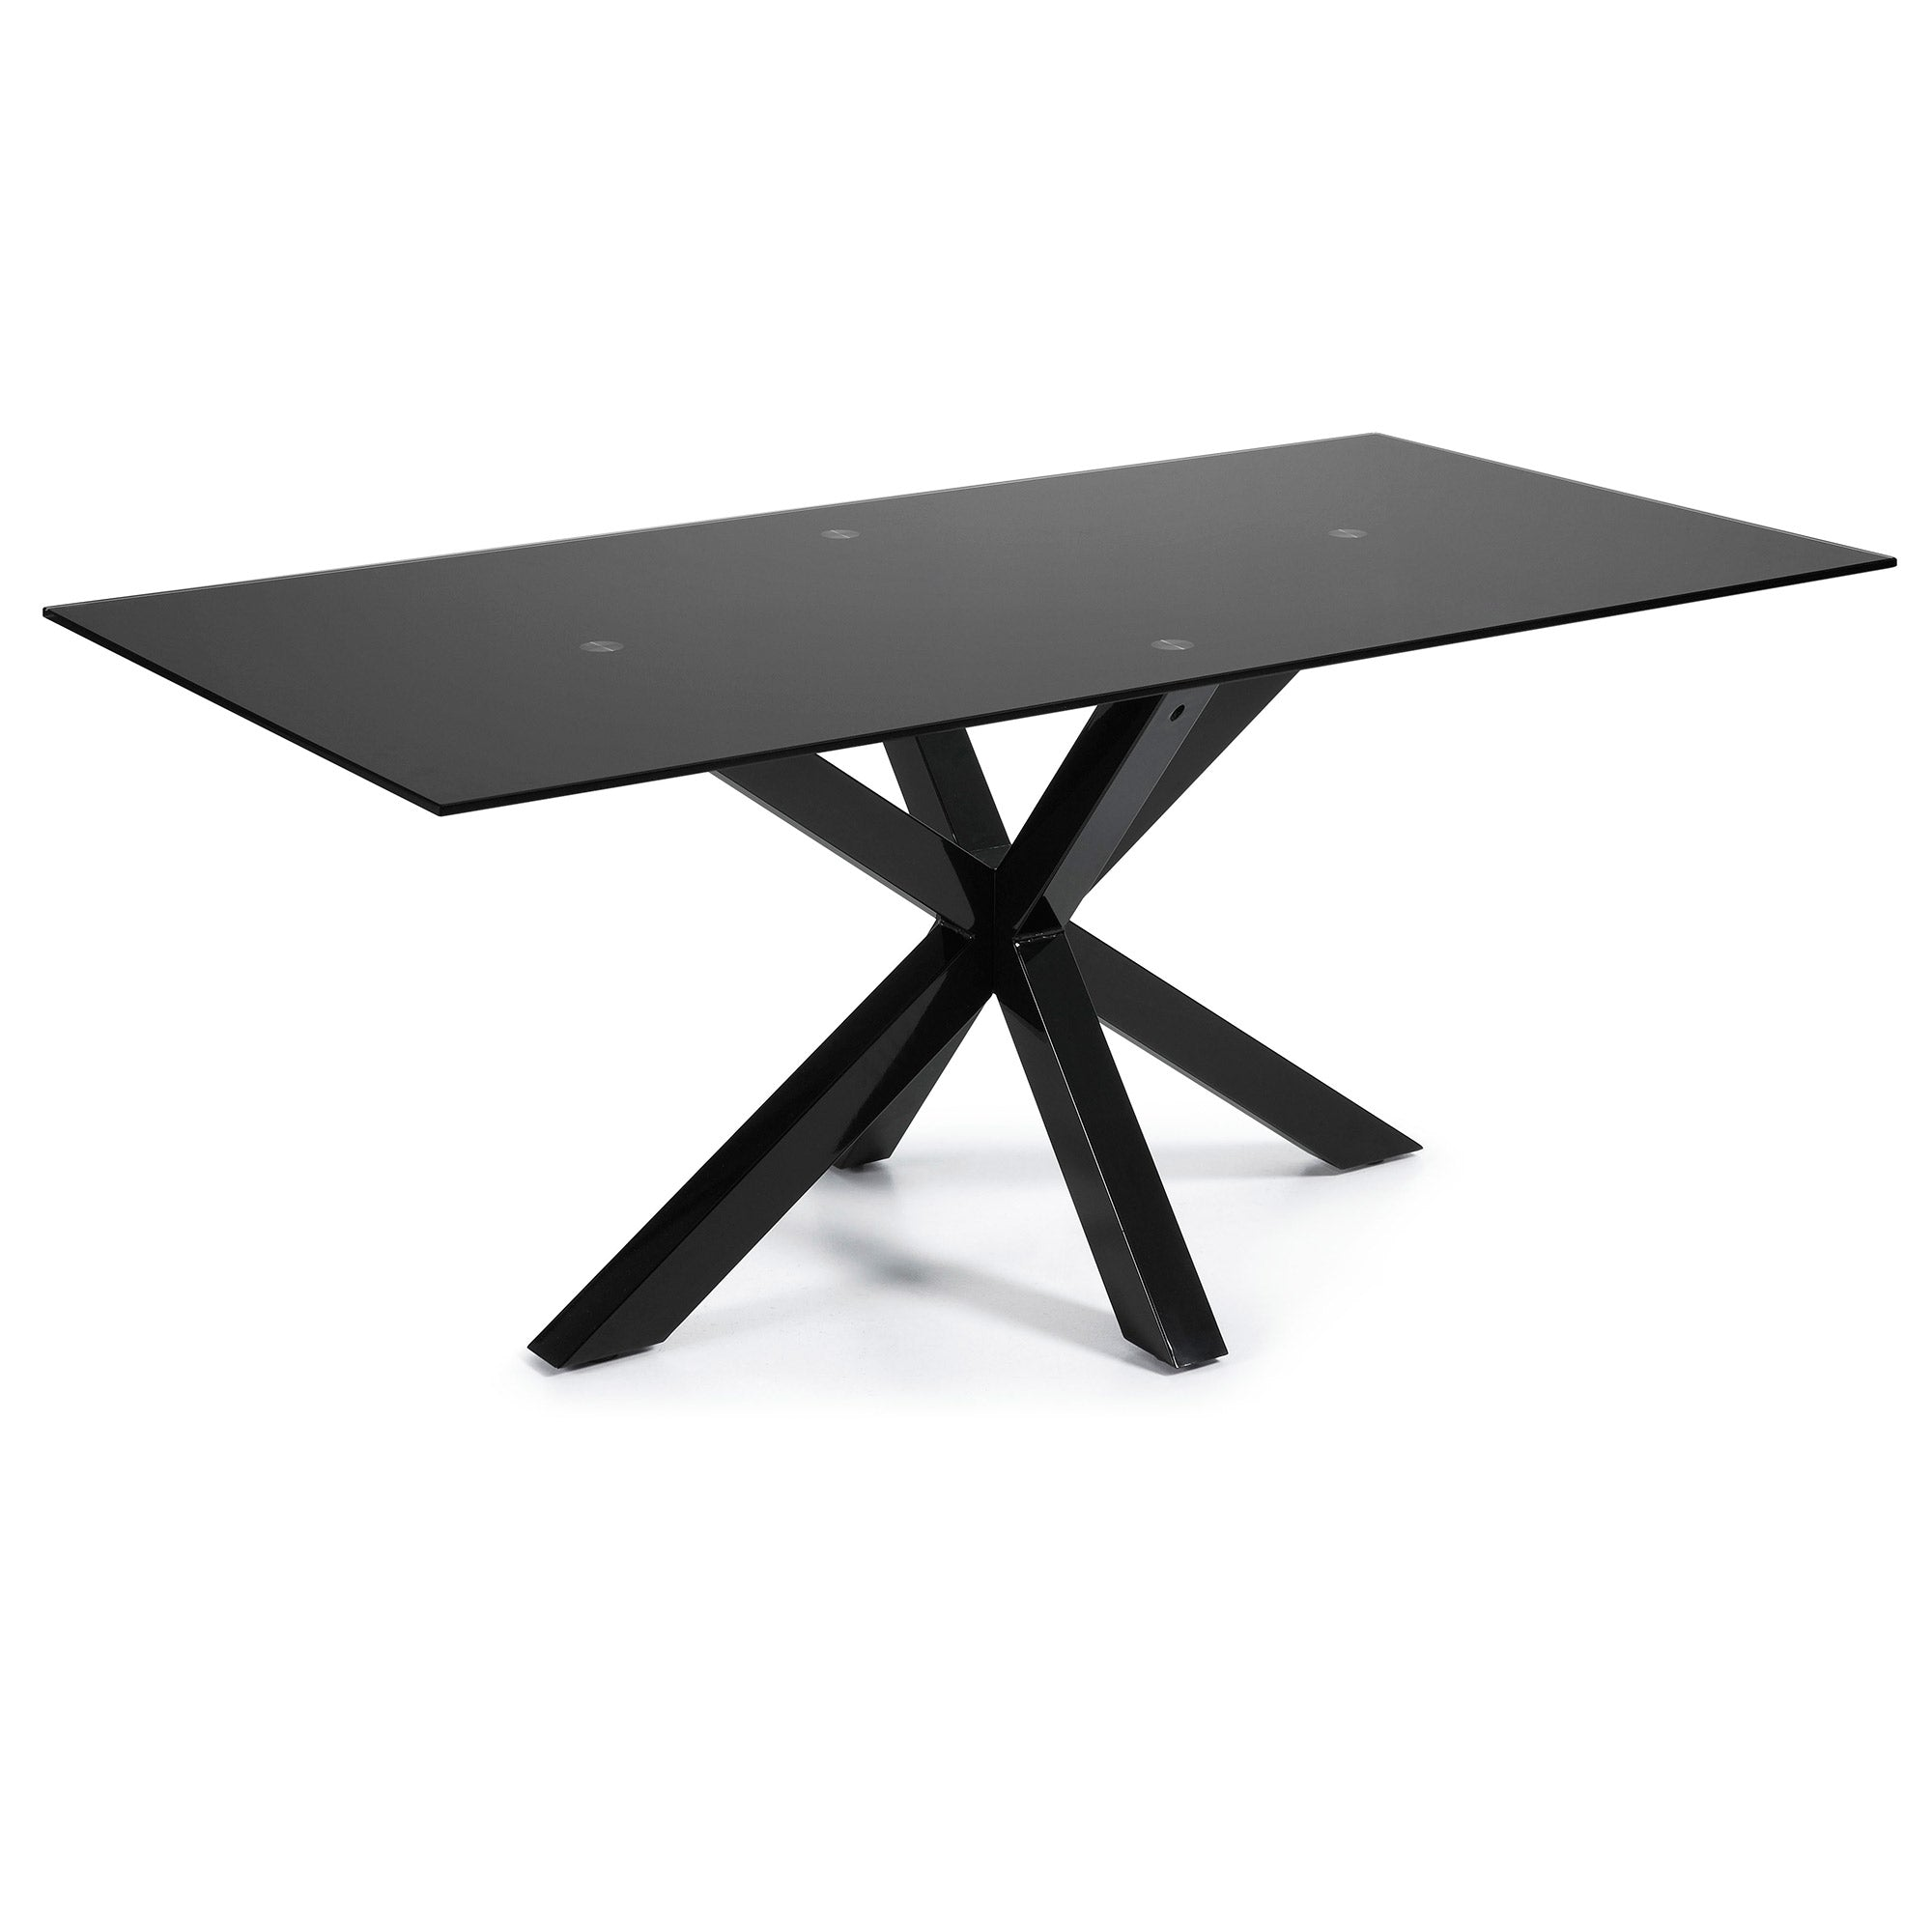 Mermi 200cm Dining Table Black Glass & Black Leg